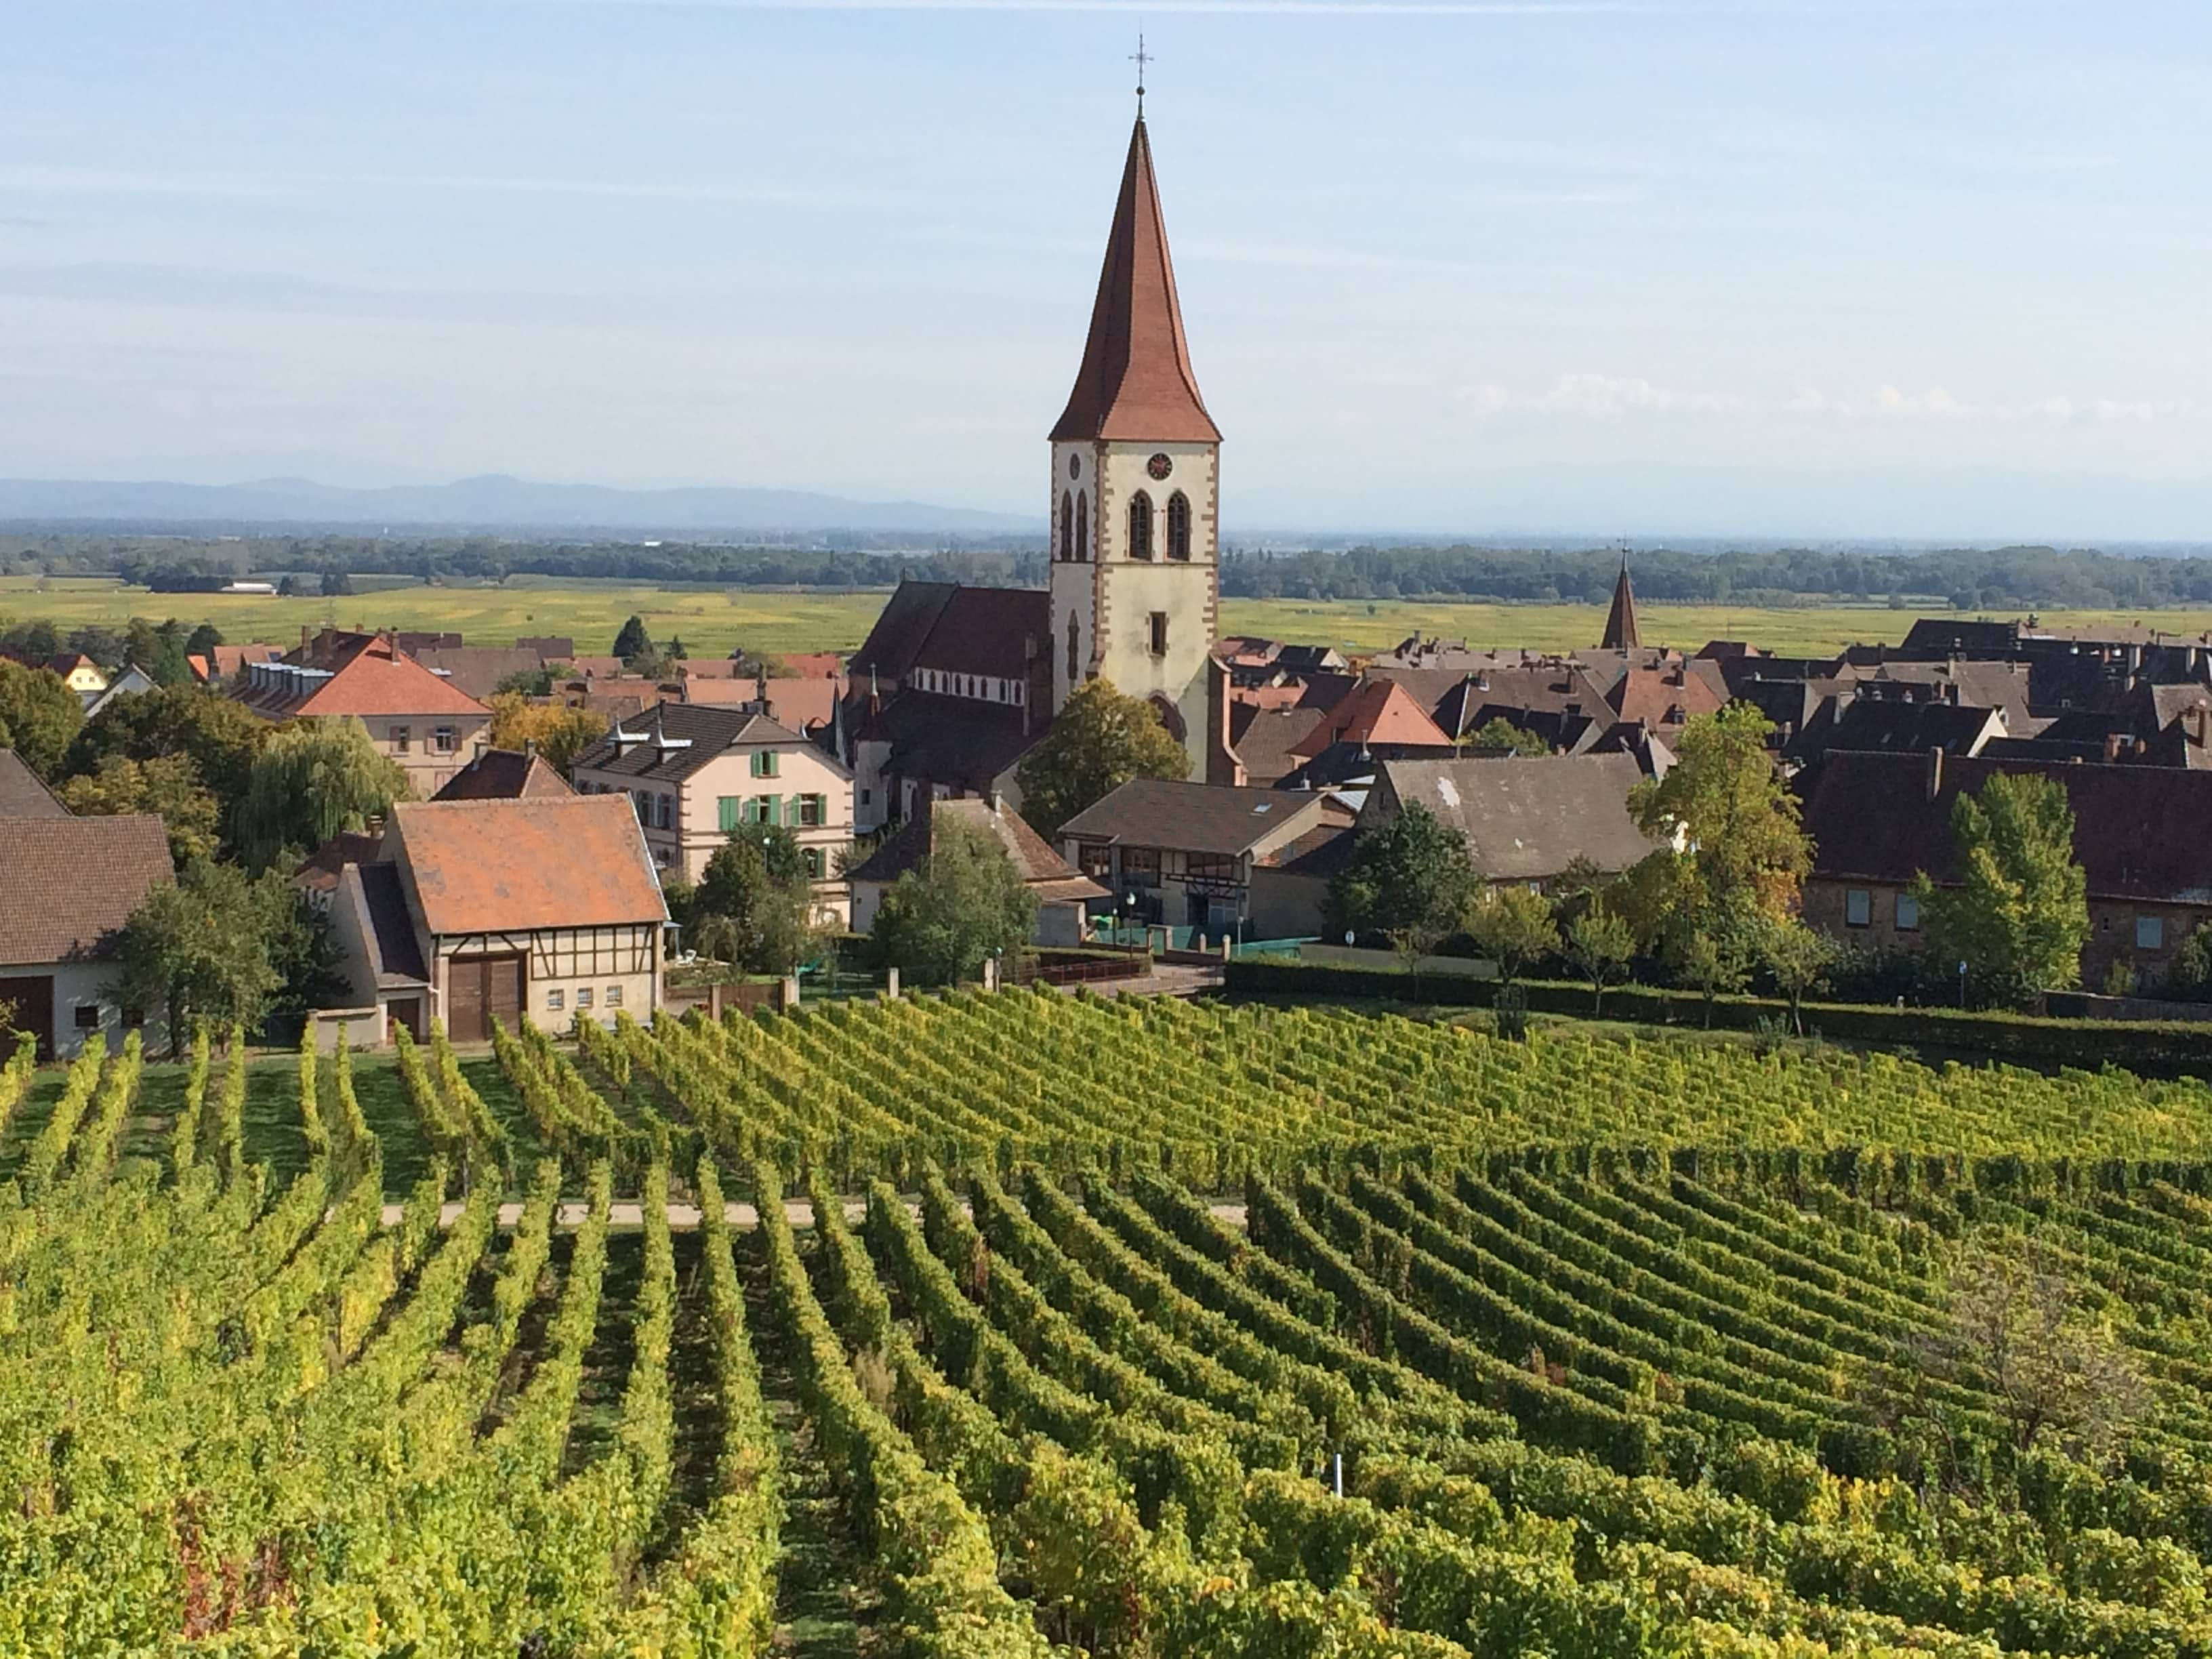 Ammerschwihr, Alsace, as seen from the vineyards. ©Deborah L. Jacobs